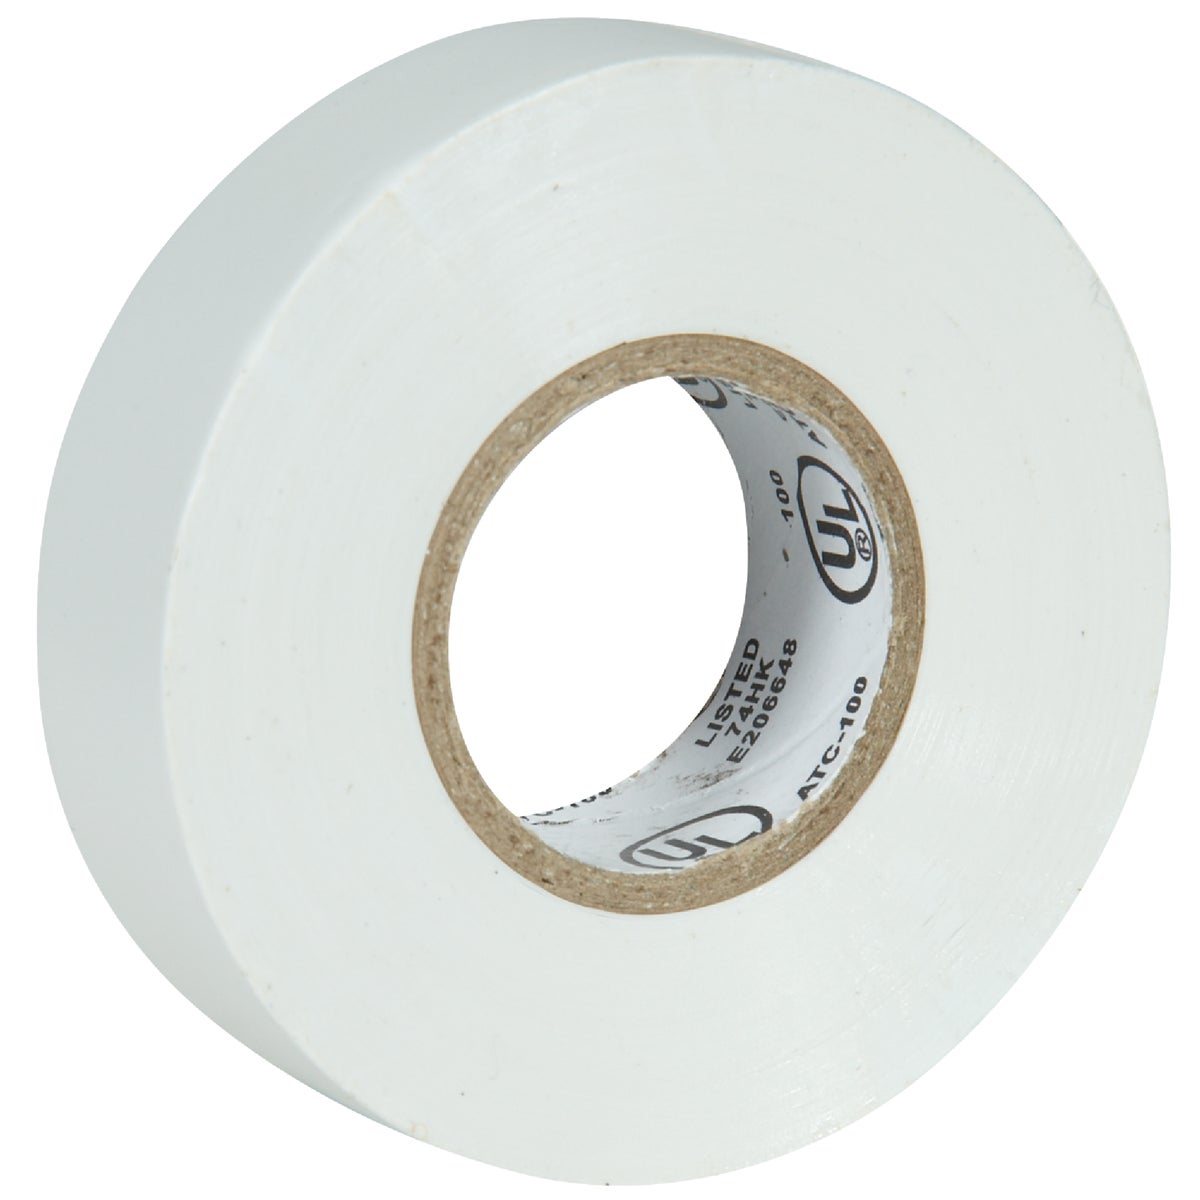 WHITE ELECTRICAL TAPE - 528242 by Do it Best